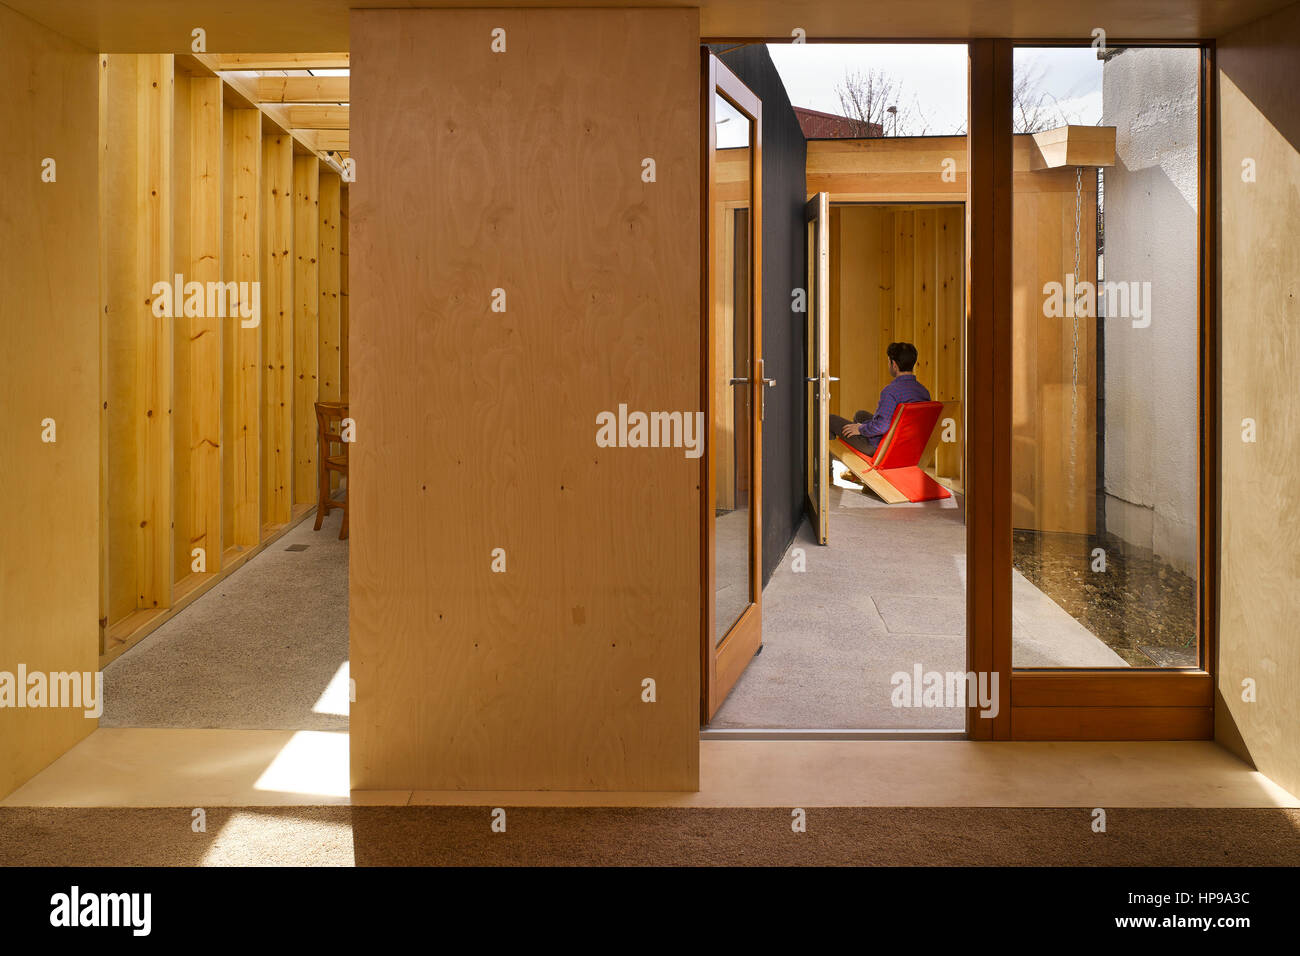 Interior view from sitting room showing kitchen area and courtyard with figure seated. Rutland Avenue, Crumlin, - Stock Image